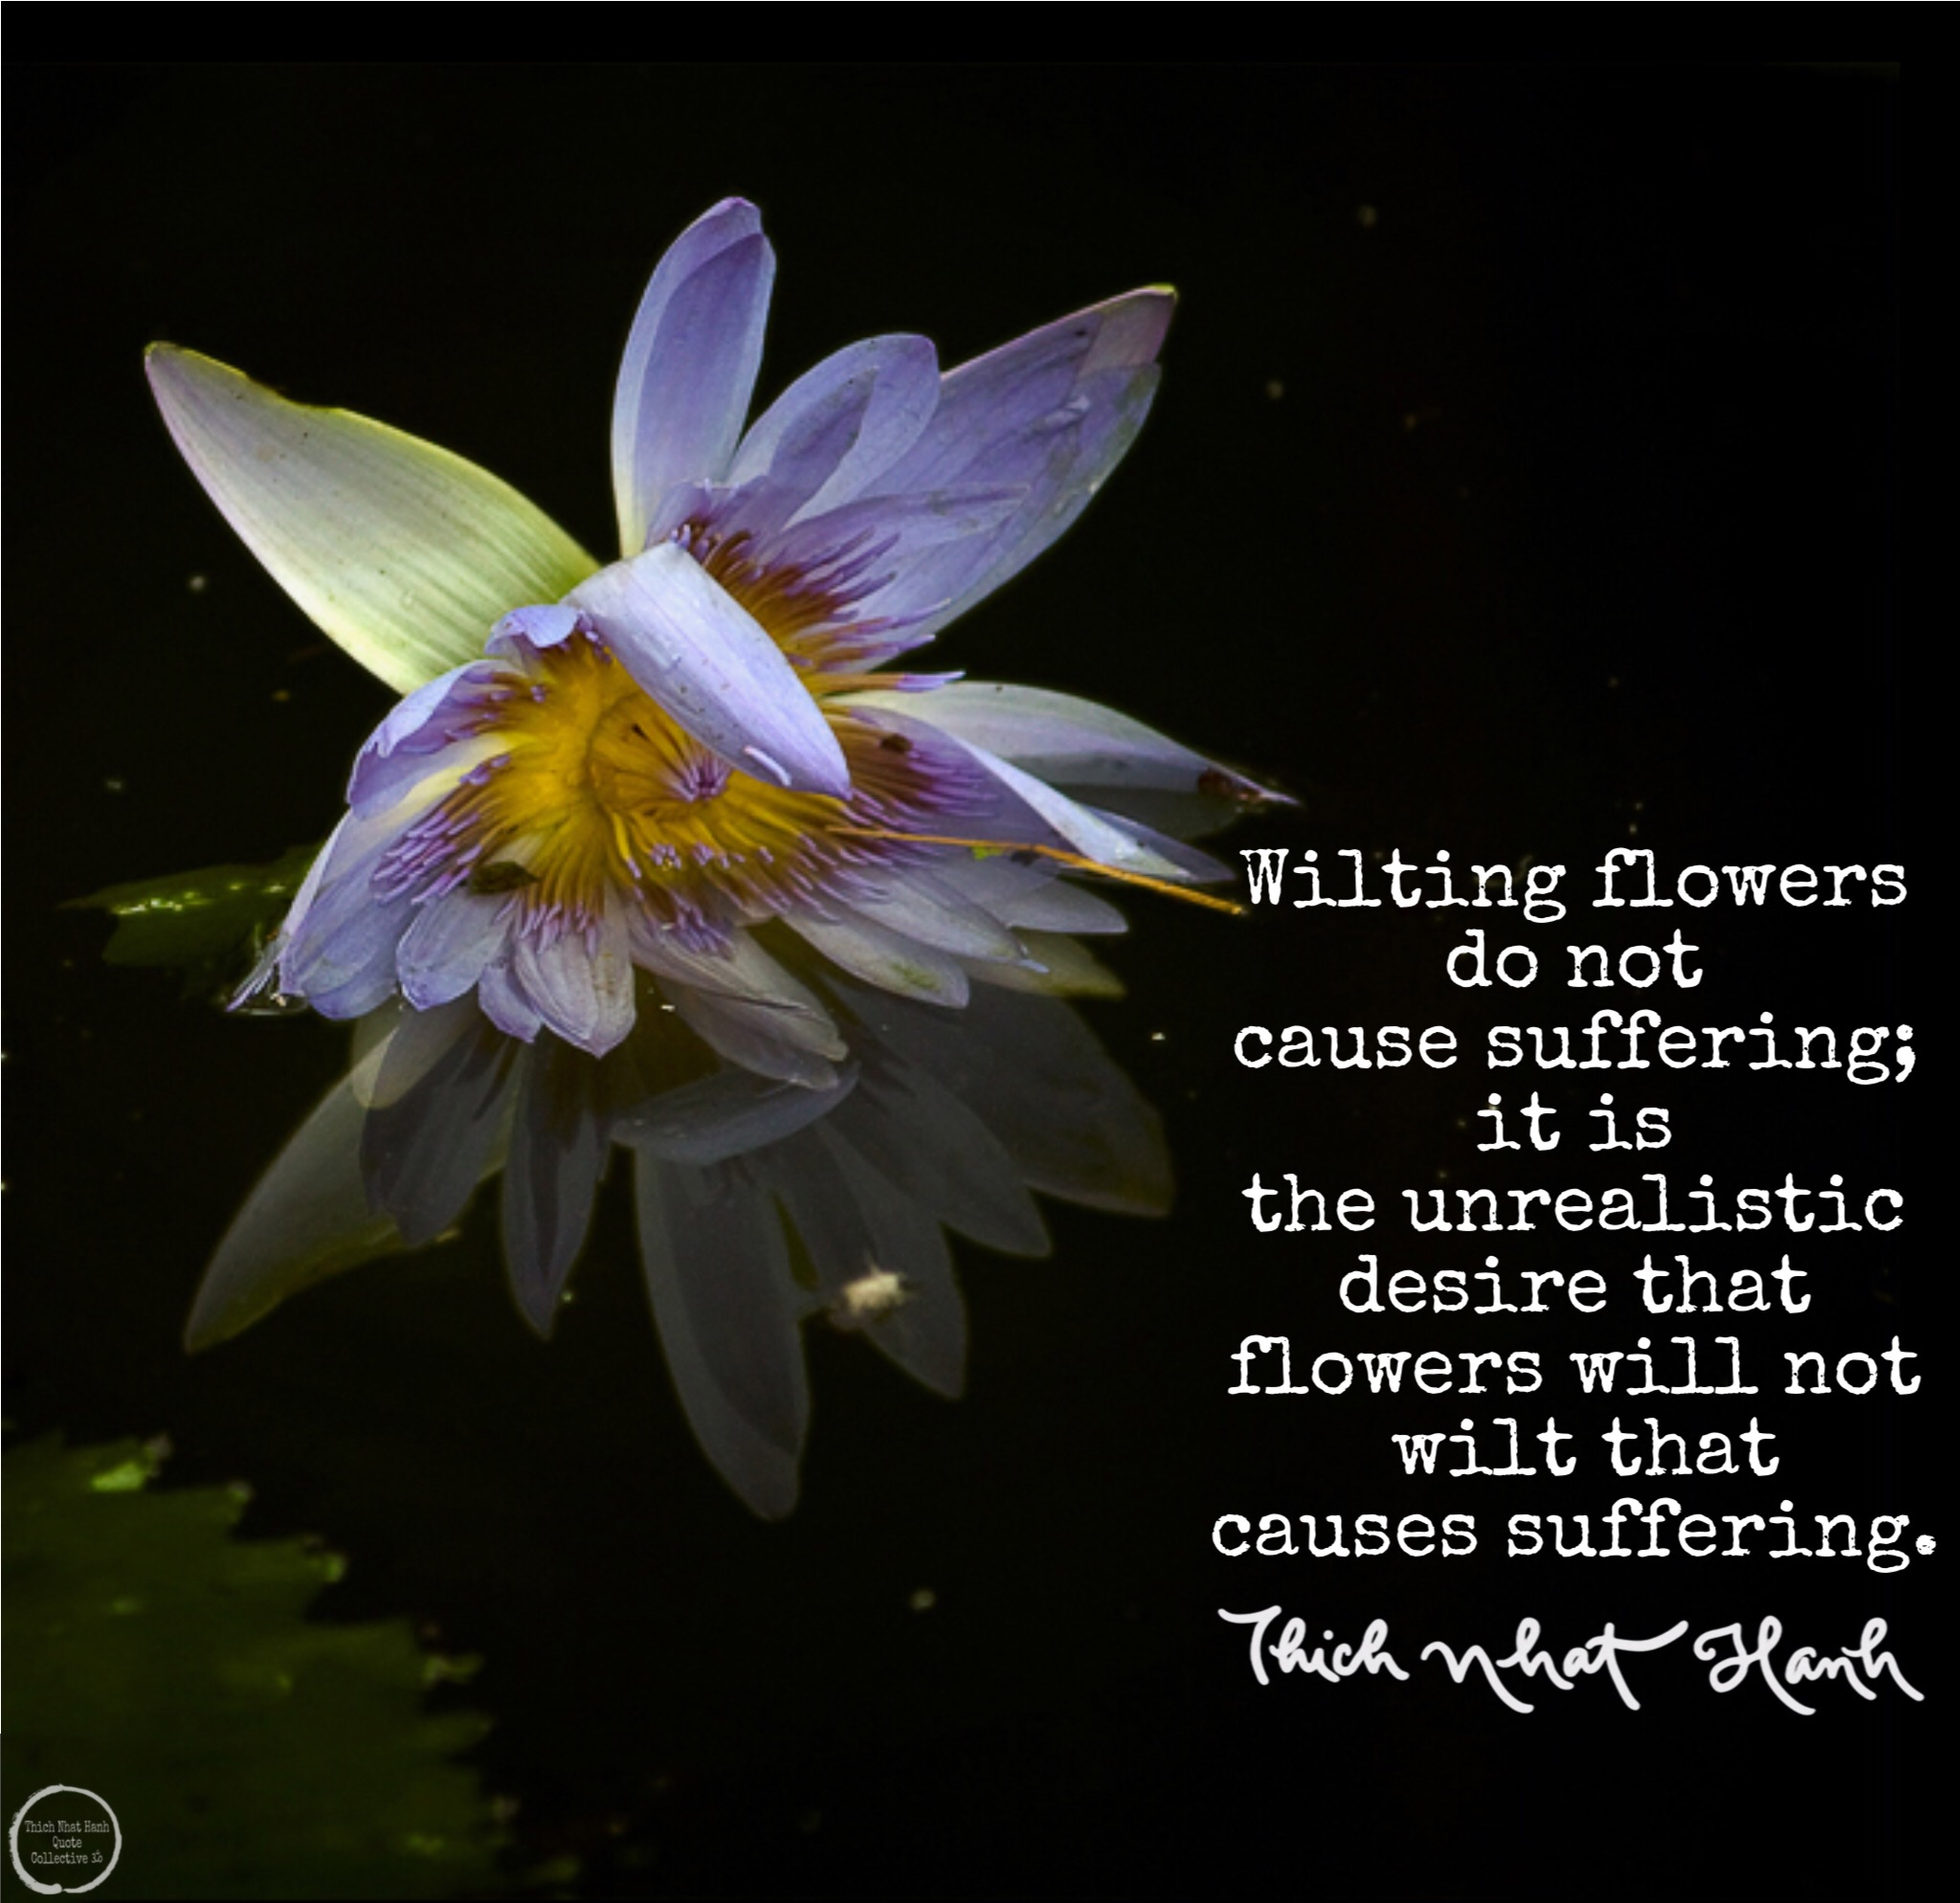 wilting flowers do not cause suffering thich nhat hanh quote